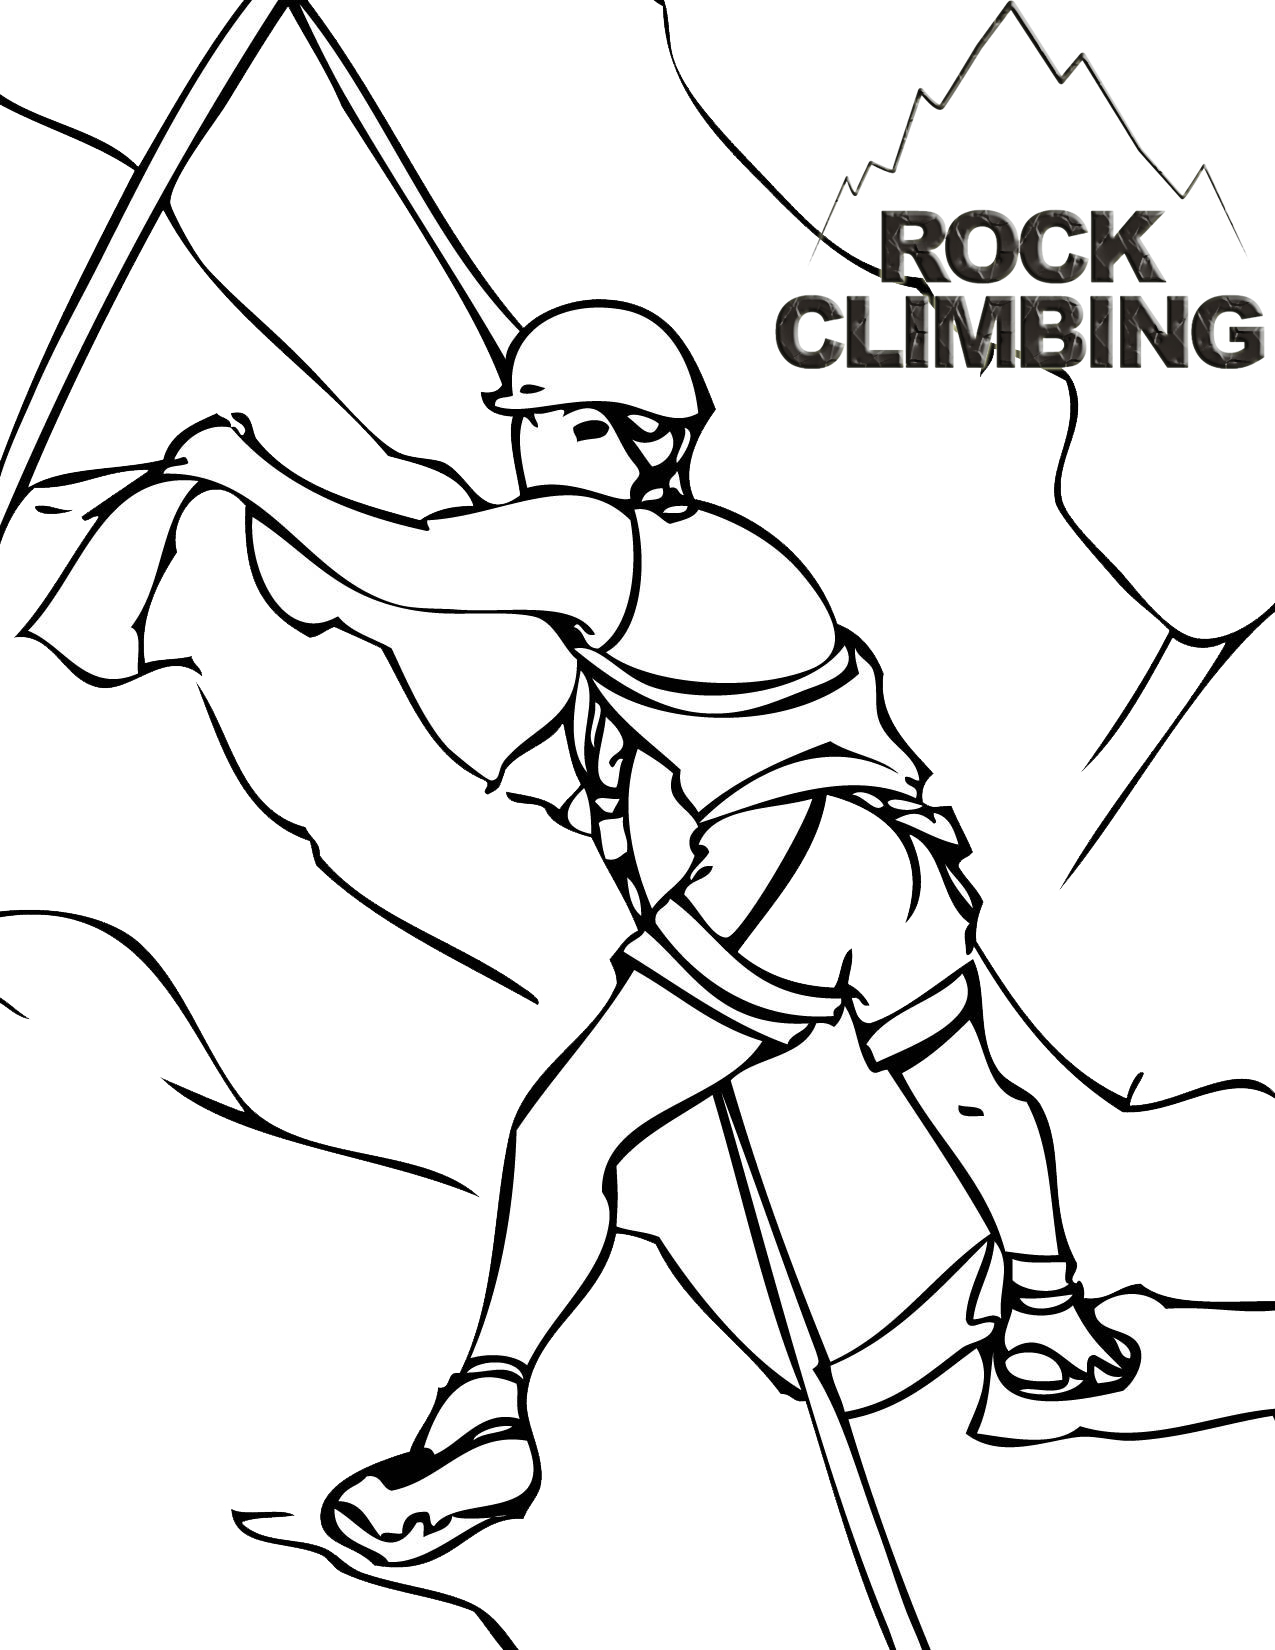 Rock Climbing Summit Coloring Page